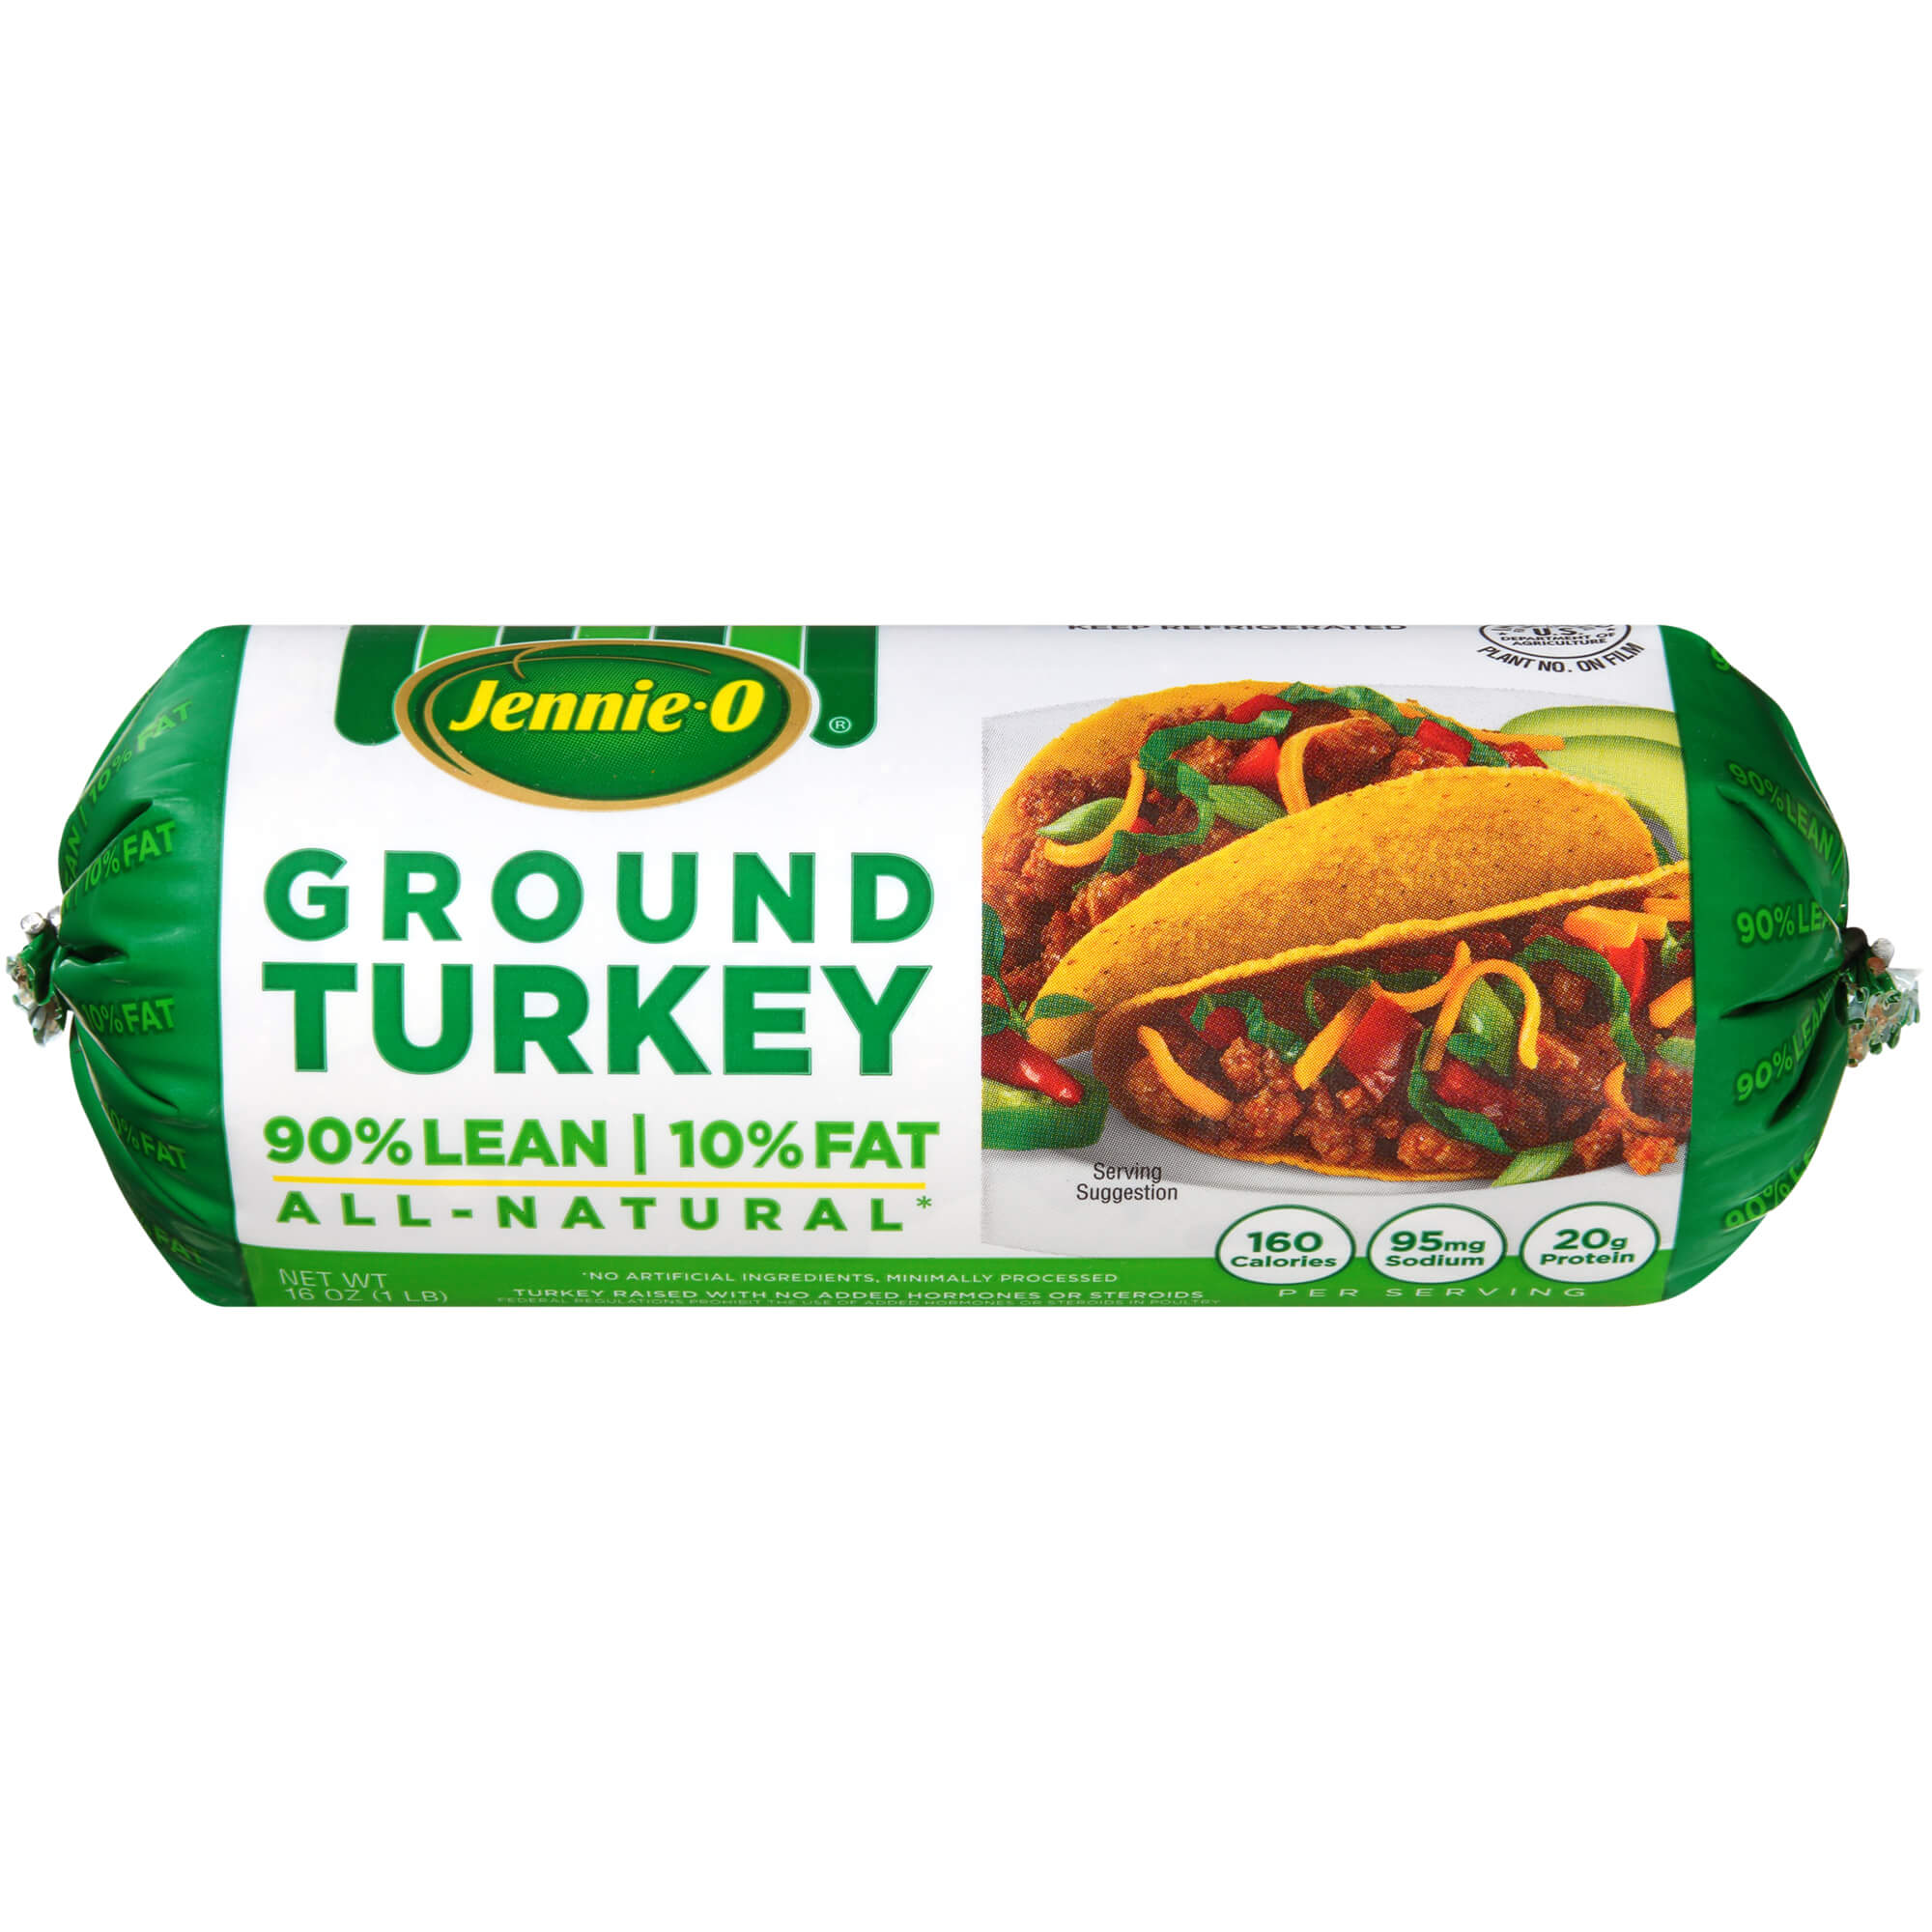 Jennie-O Lean Ground <mark>Turkey</mark> Roll, 16 ounce (1 pound)